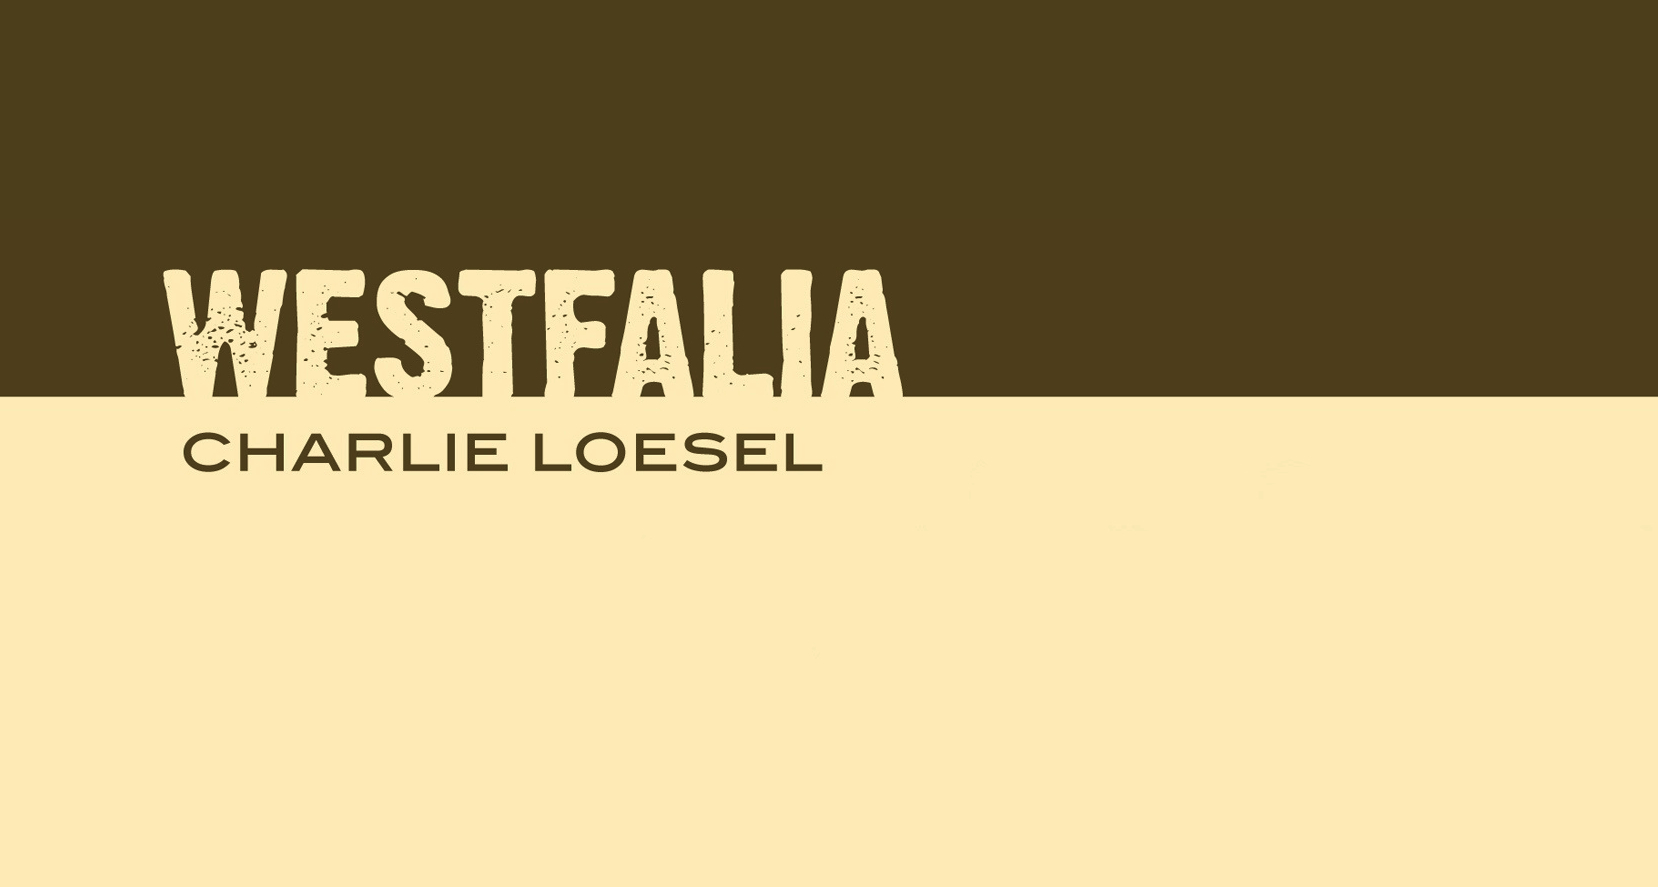 Westfalia Background